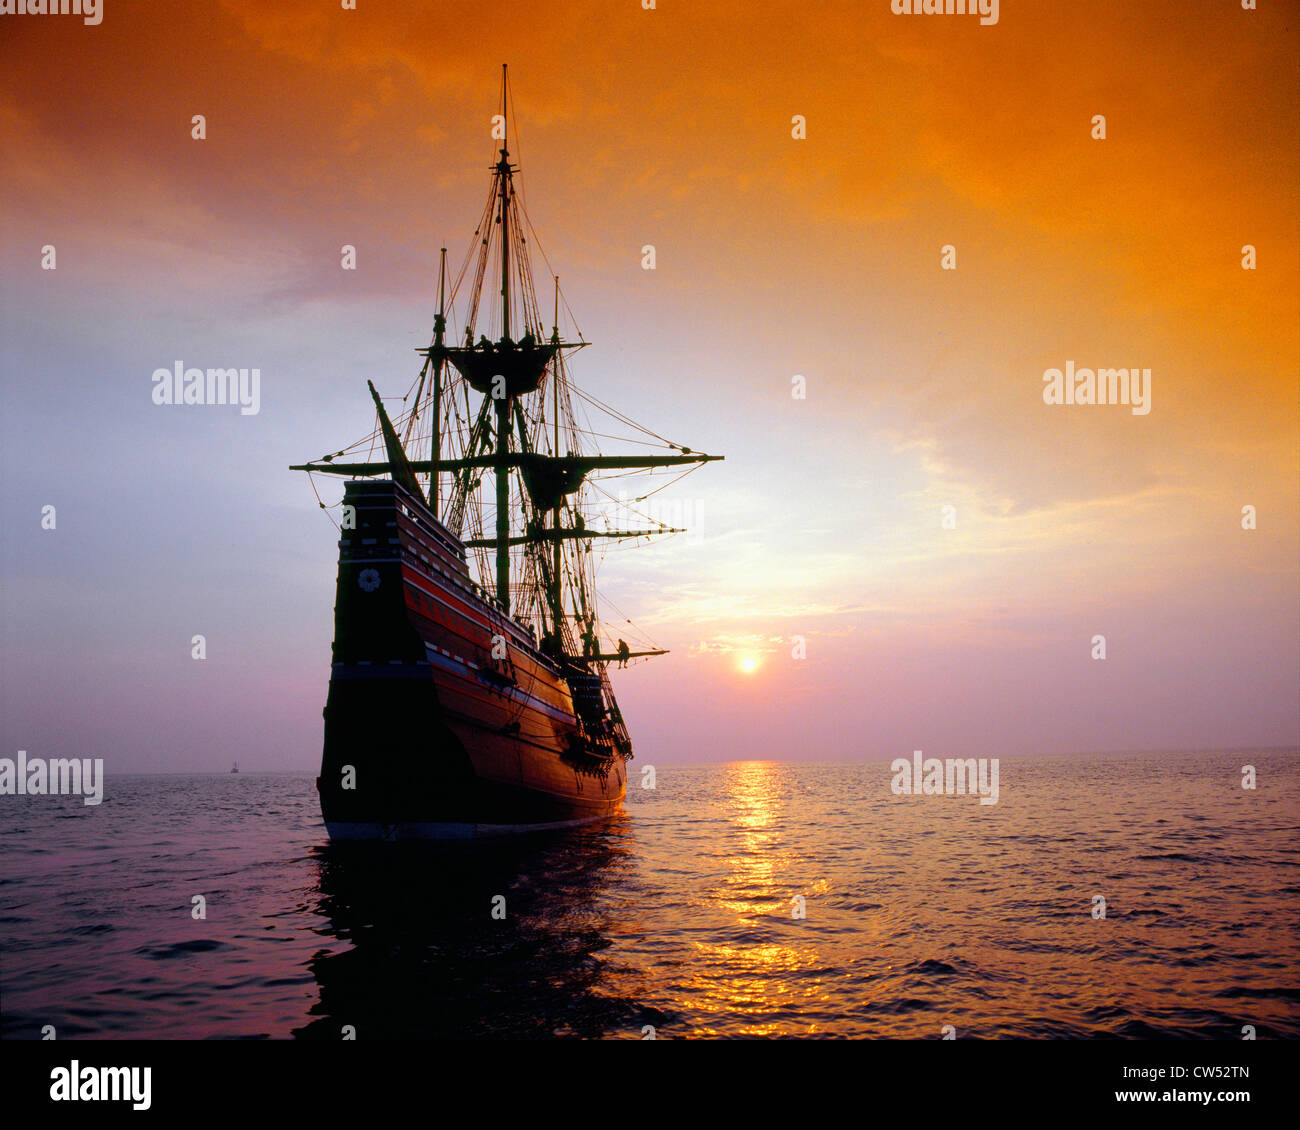 Mayflower II Replica bei Sonnenuntergang, Massachusetts Stockbild